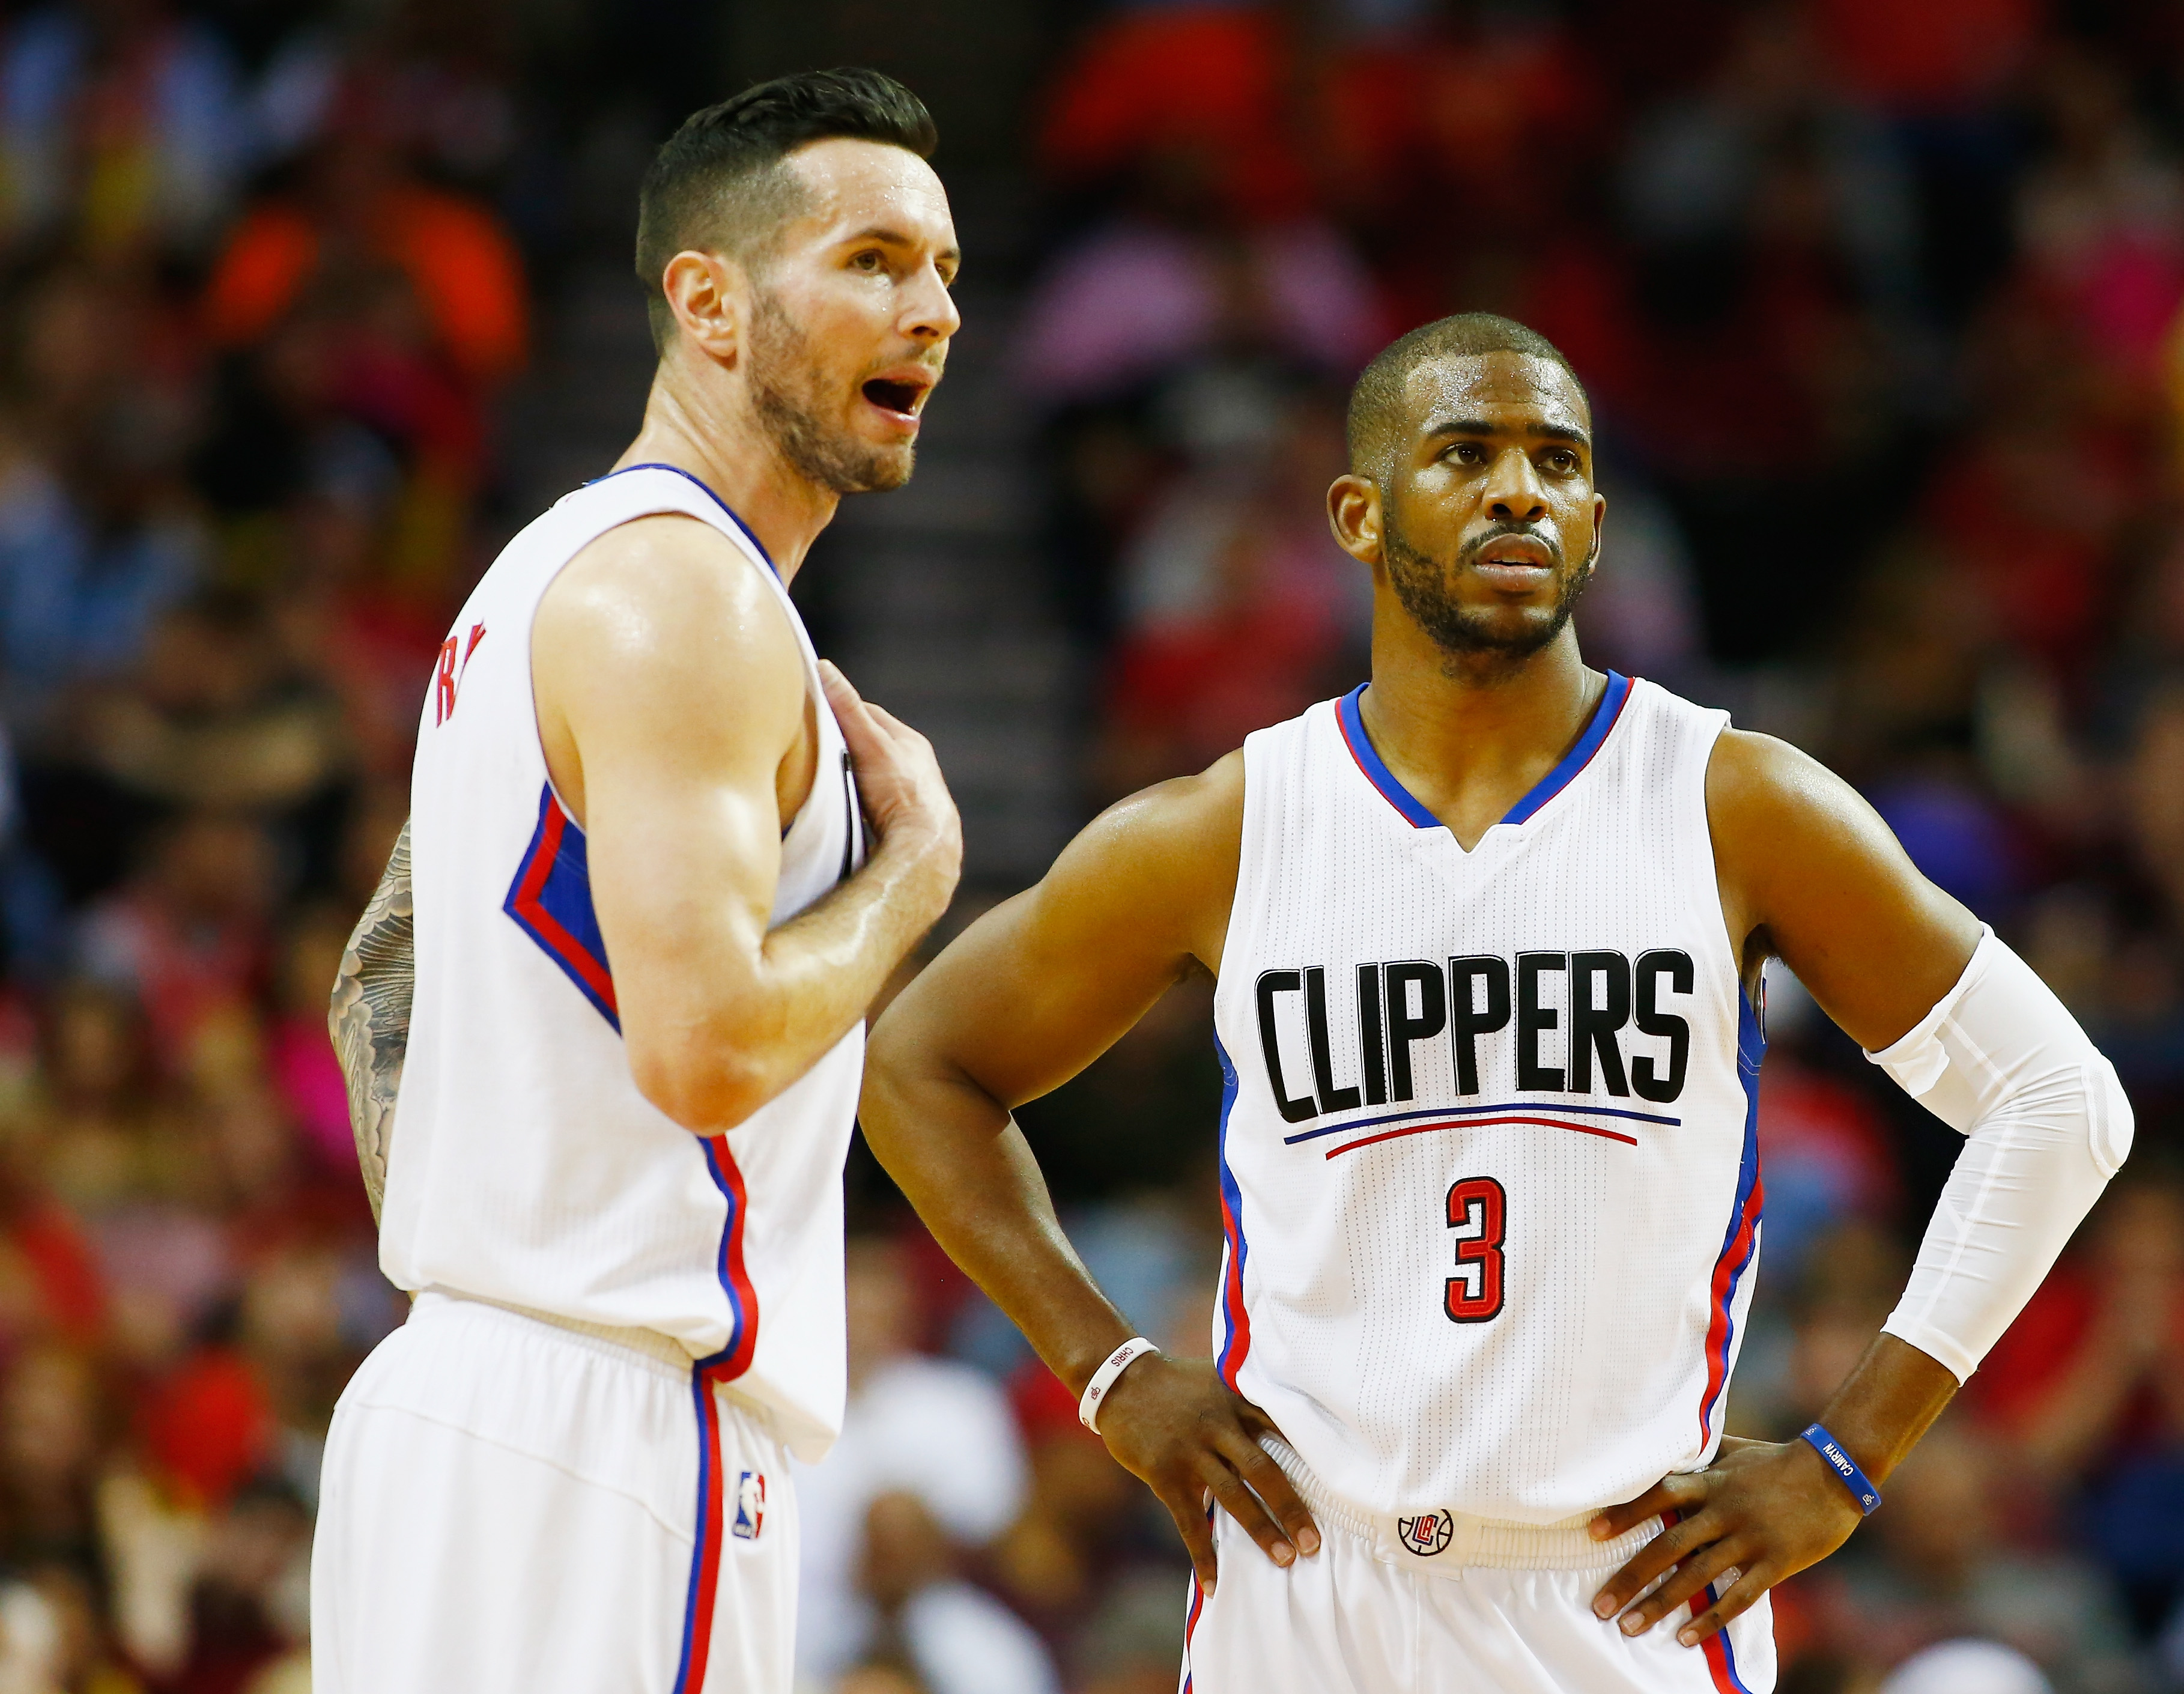 Los Angeles Clippers, NBA Draft